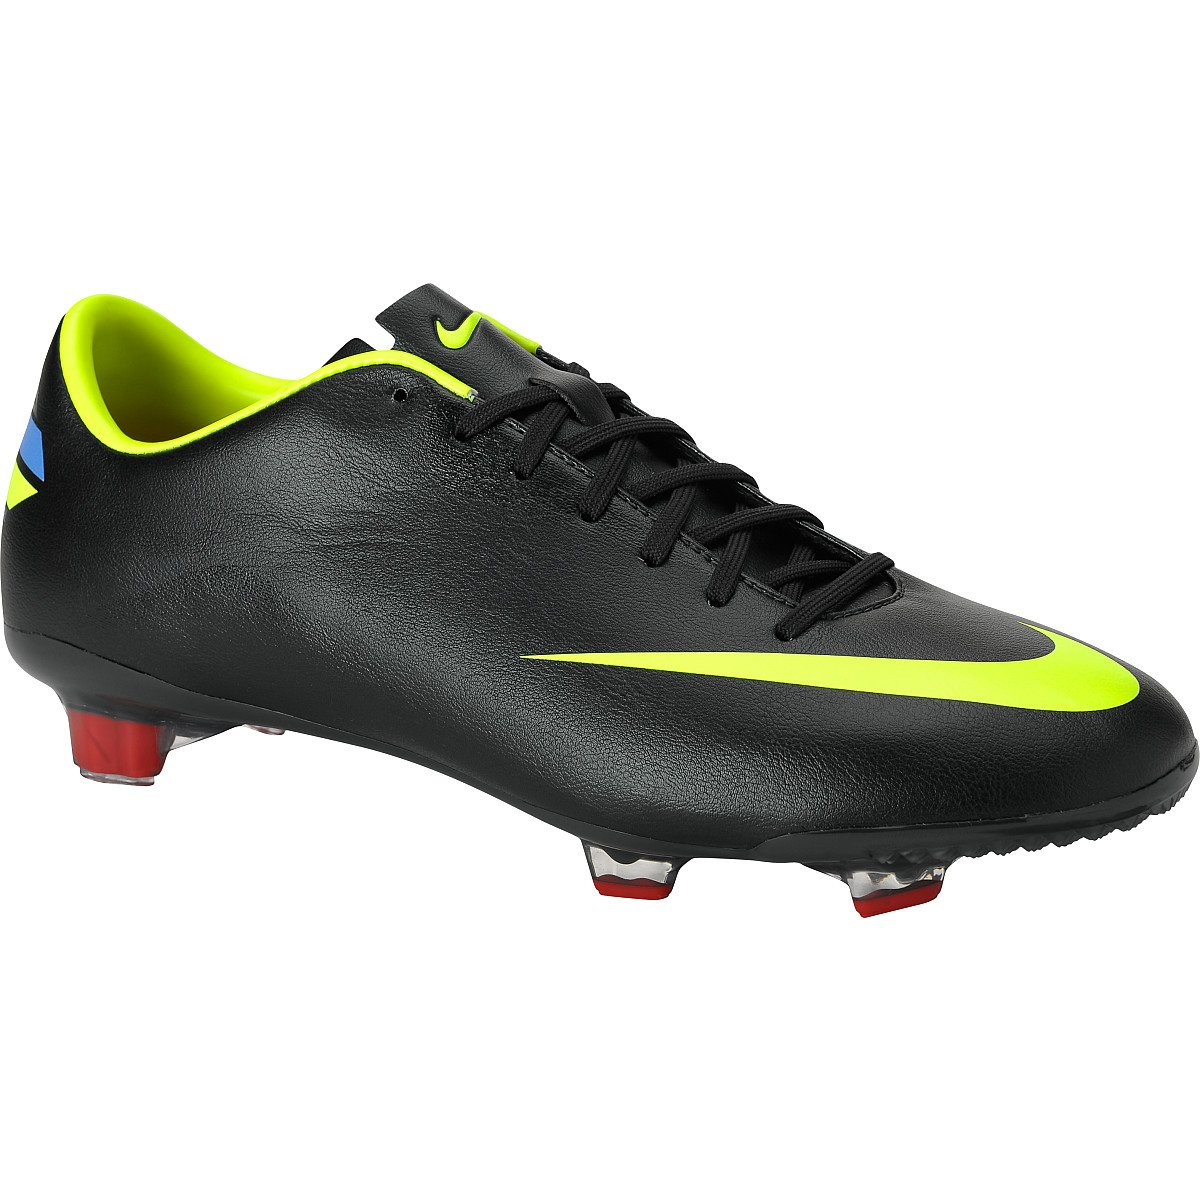 cheaper 18ed6 f5b95 Amazon.com  Nike Mercurial Miracle III FG - SeaweedVoltCha